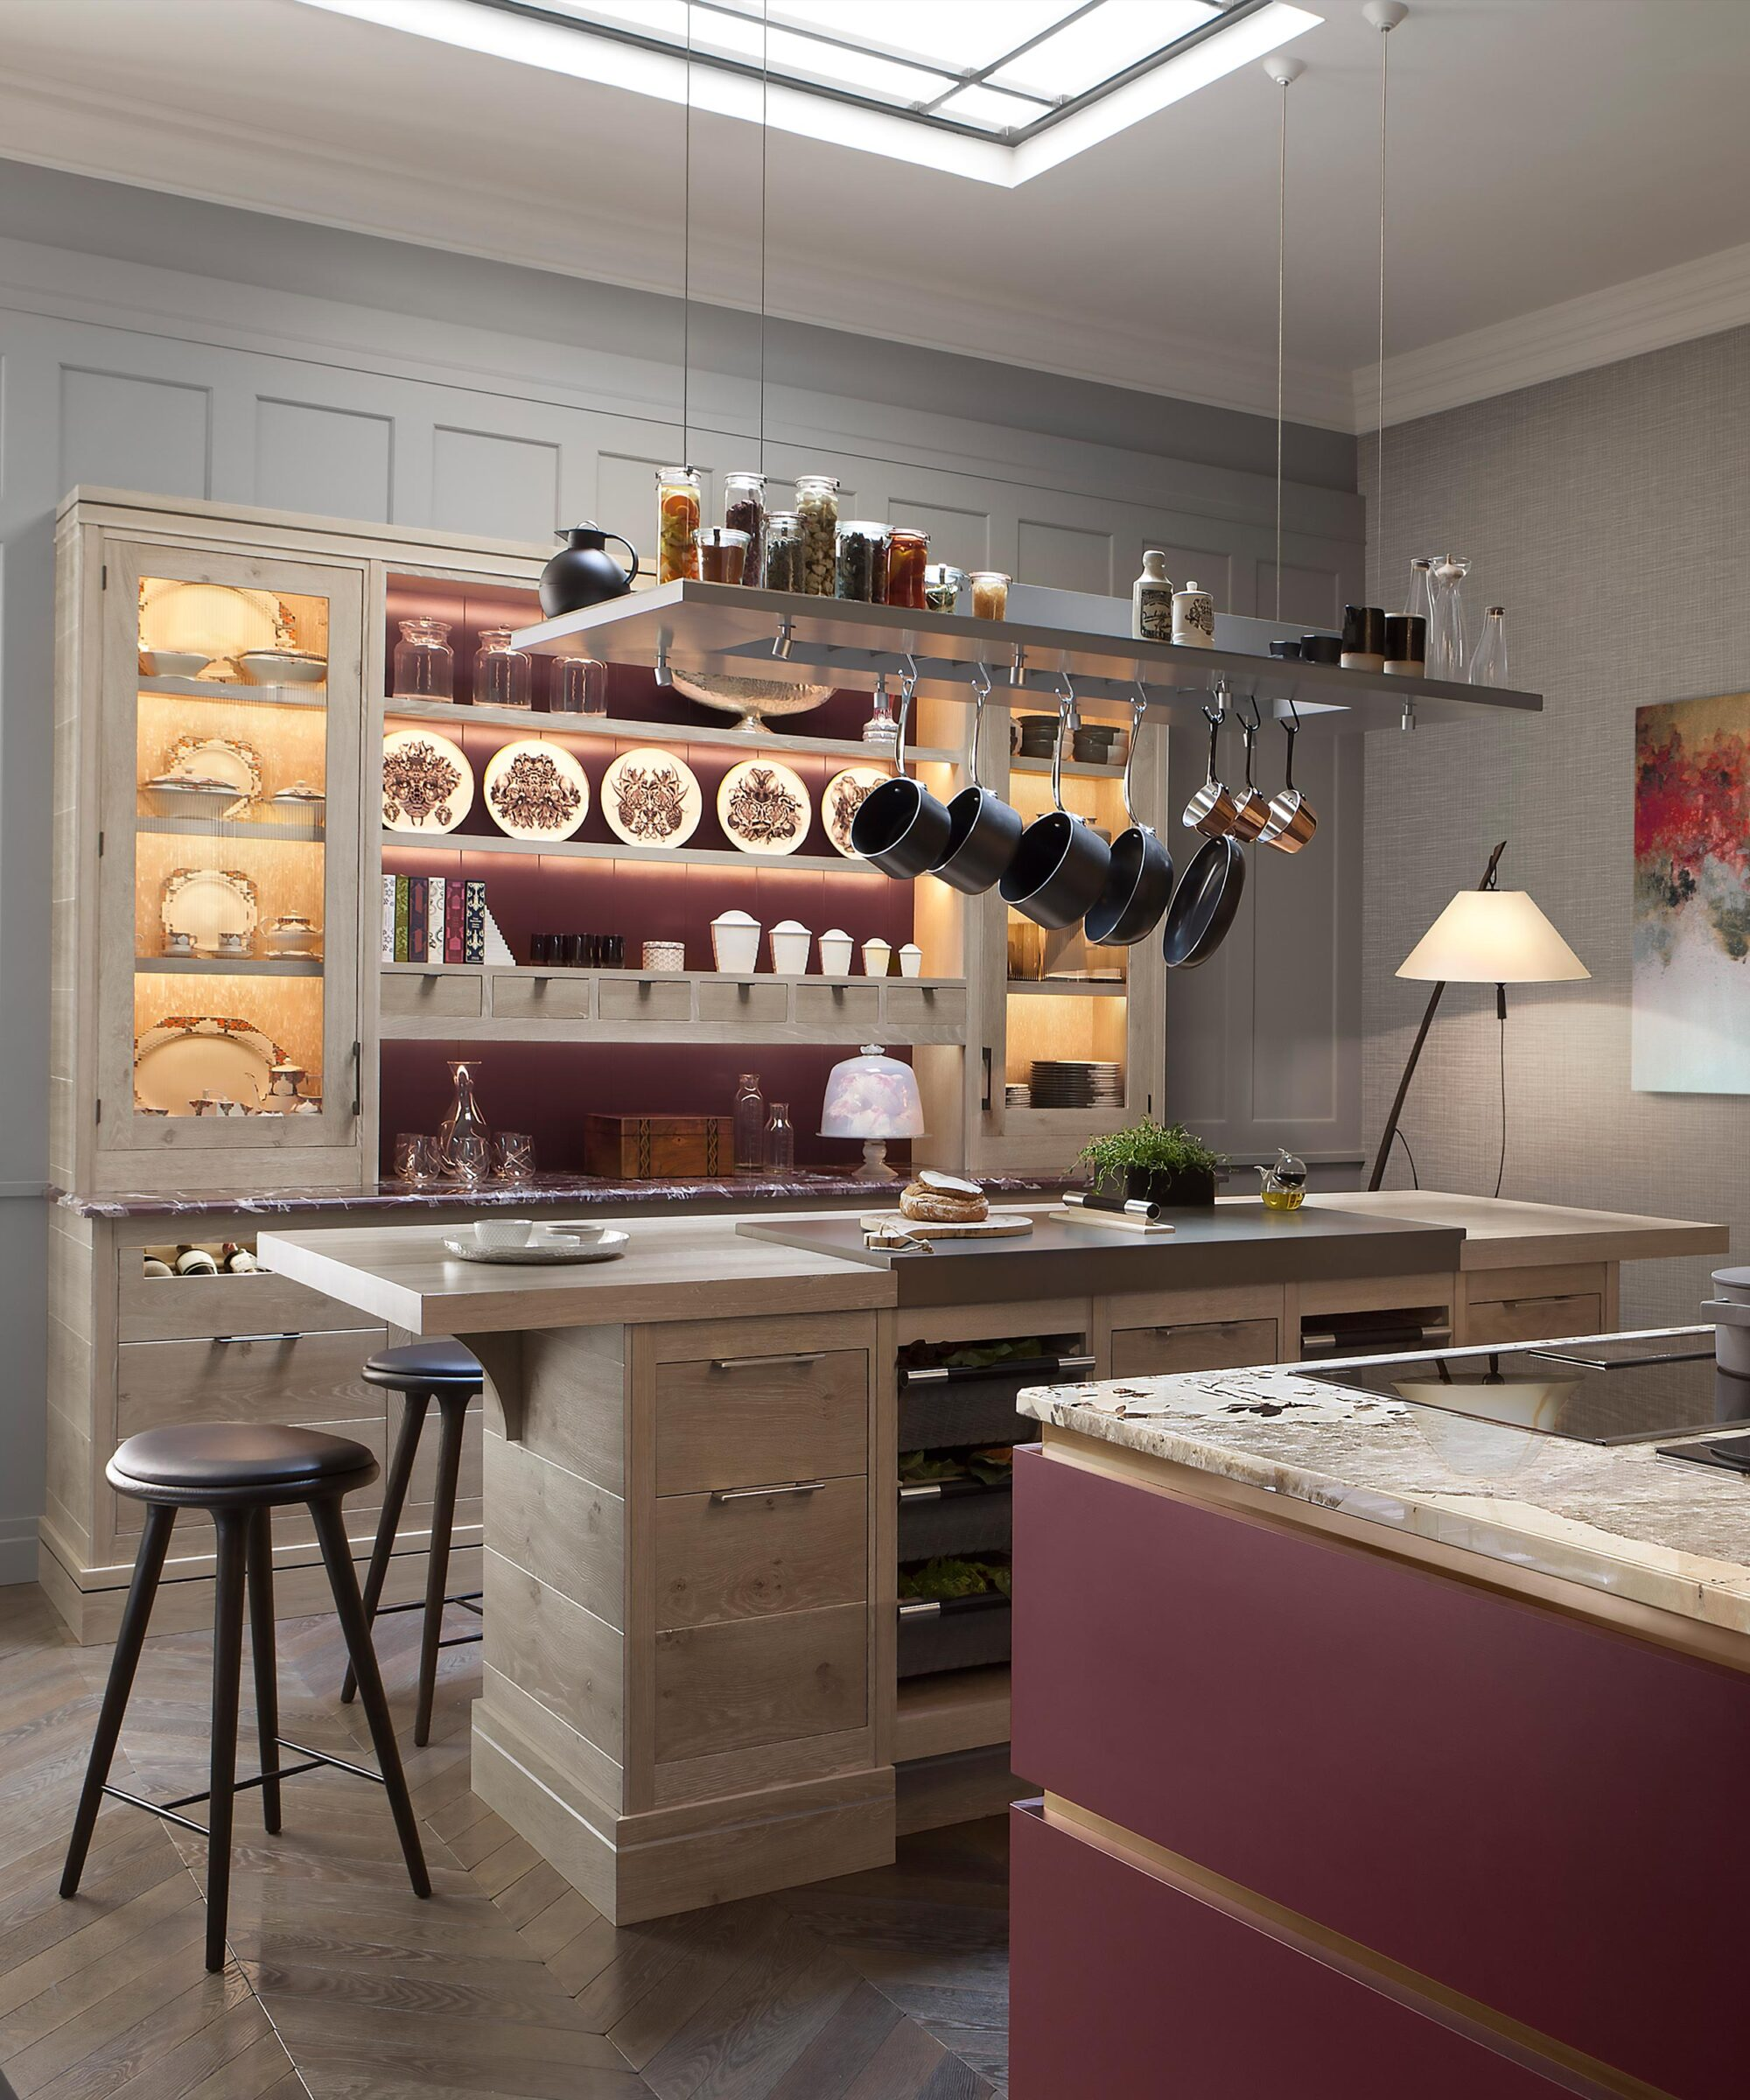 Brasserie Bespoke Kitchen Design by Smallbone